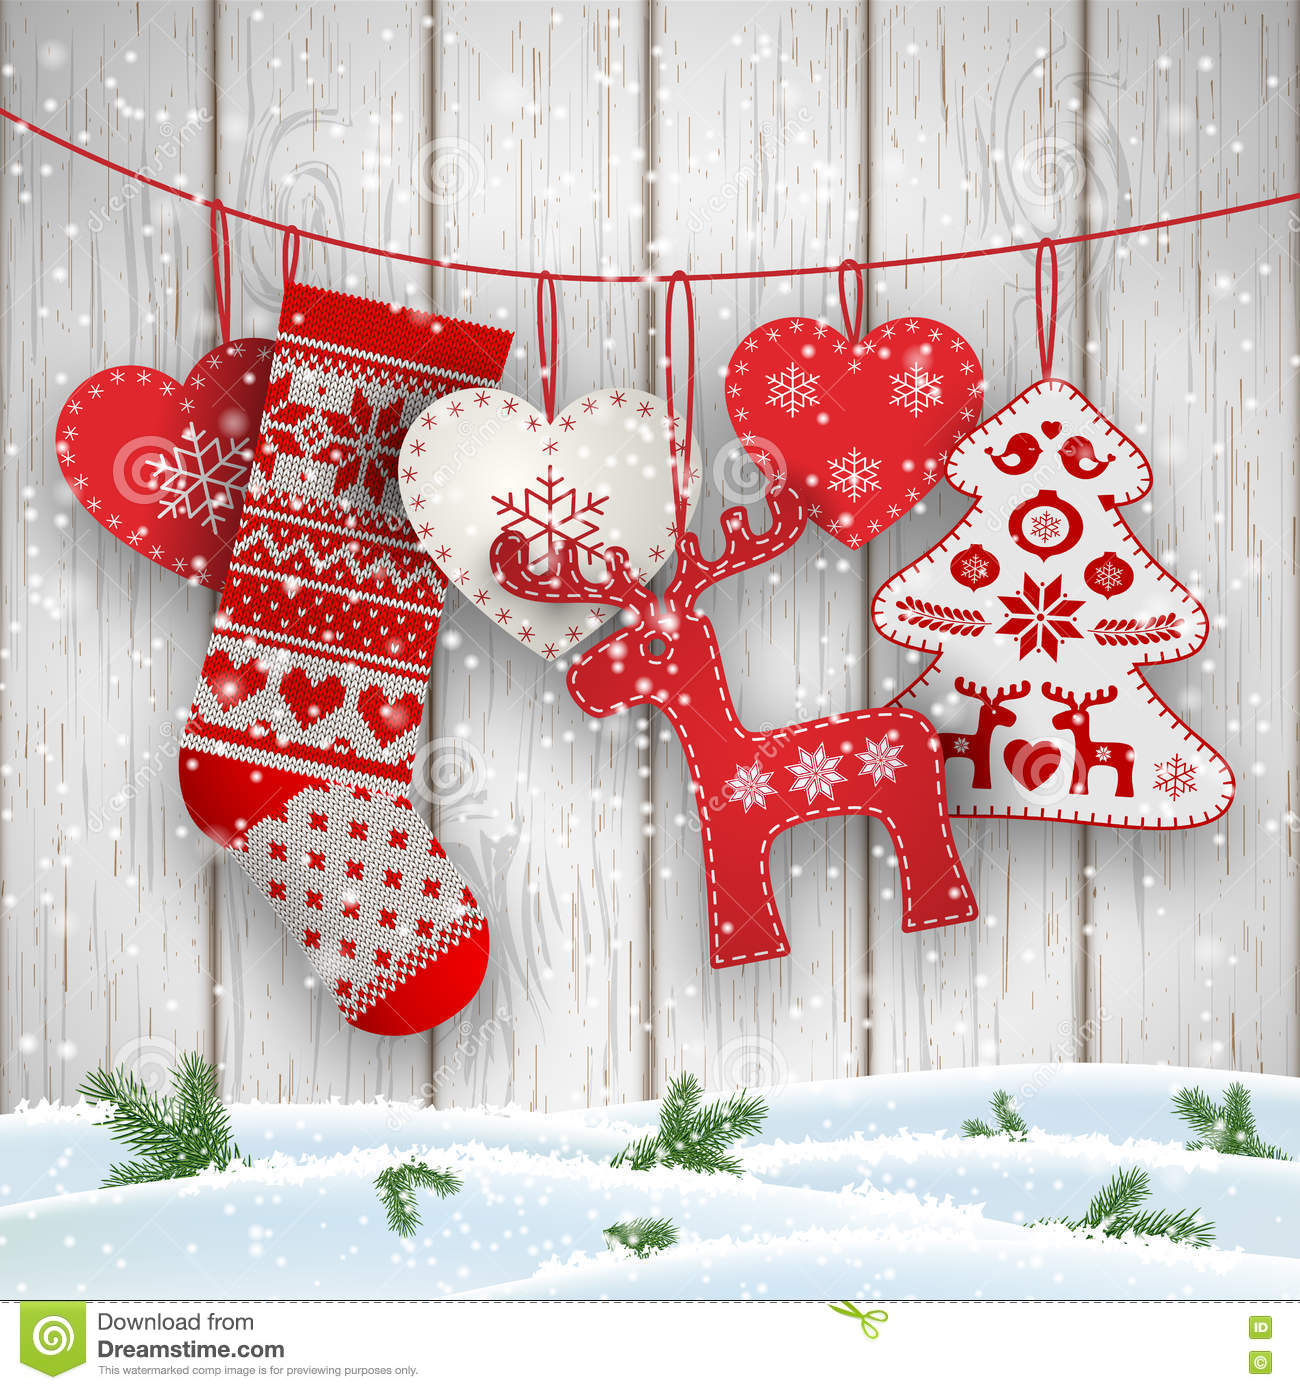 Wall Xmas Decorations Christmas Folklore Decorations Hanging In Front Of White Wooden